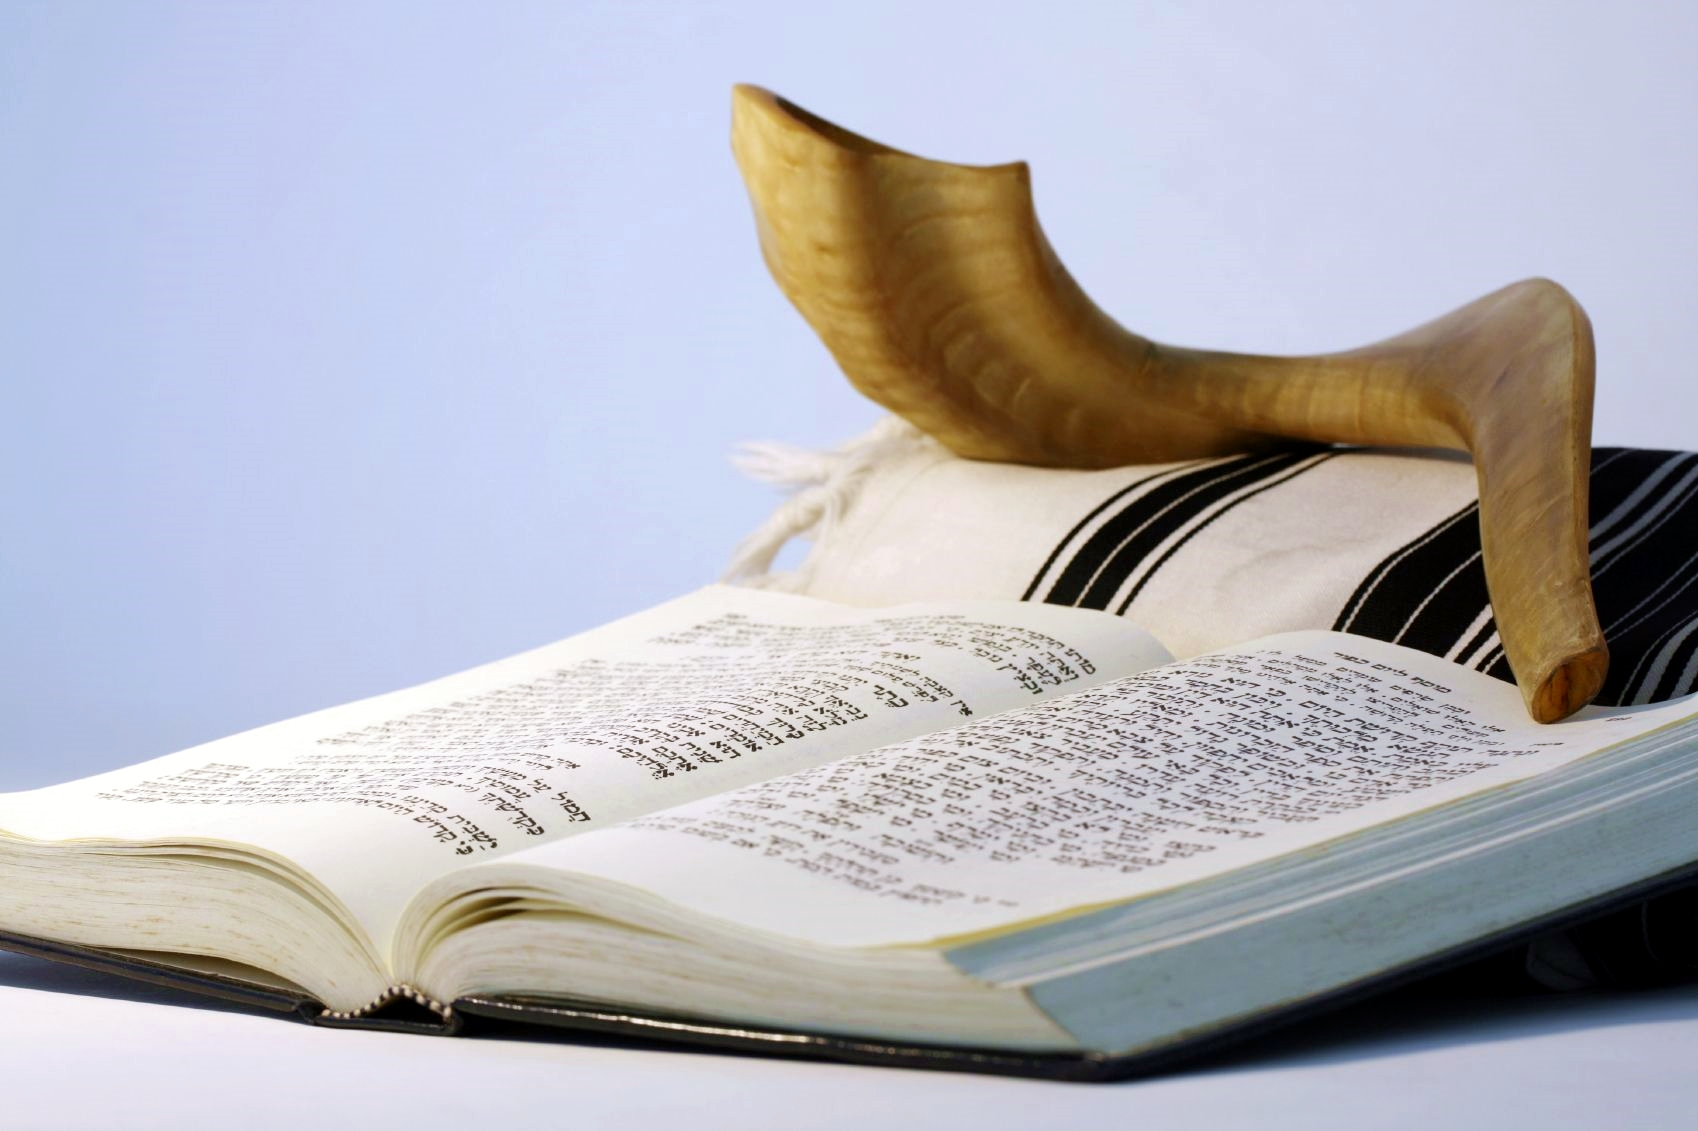 The shofar (ram's horn), which is the object resting on a tallit (prayer shawl), is blown throughout the Hebrew month of Elul in preparation for the High Holy Days, which begin this Wednesday night with Rosh HaShanah (New Year), also called Yom Teruah (The Day of Blowing the Shofar).